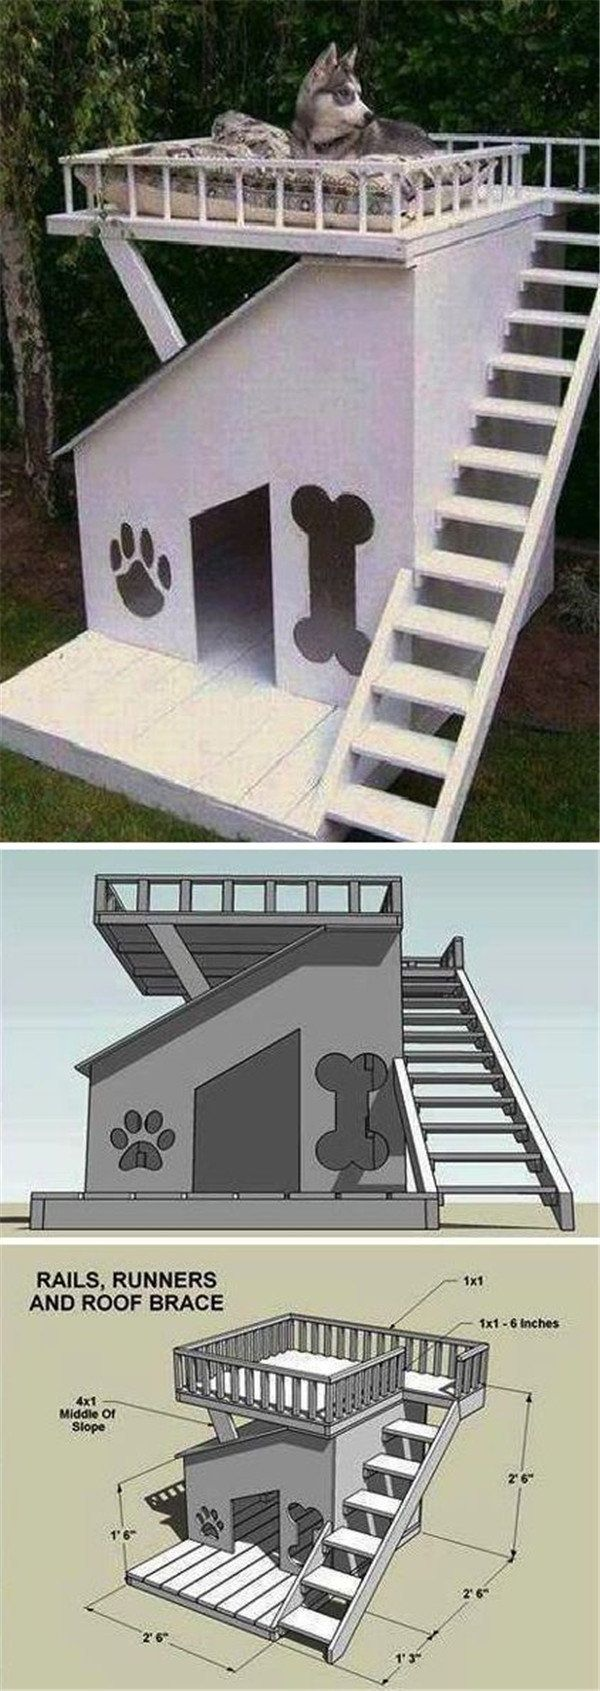 10 Diy Dog Houses So Amazing You Ll Wish You Lived In Them Knockoffdecor Com Dog House Diy Dog Houses Dog Rooms